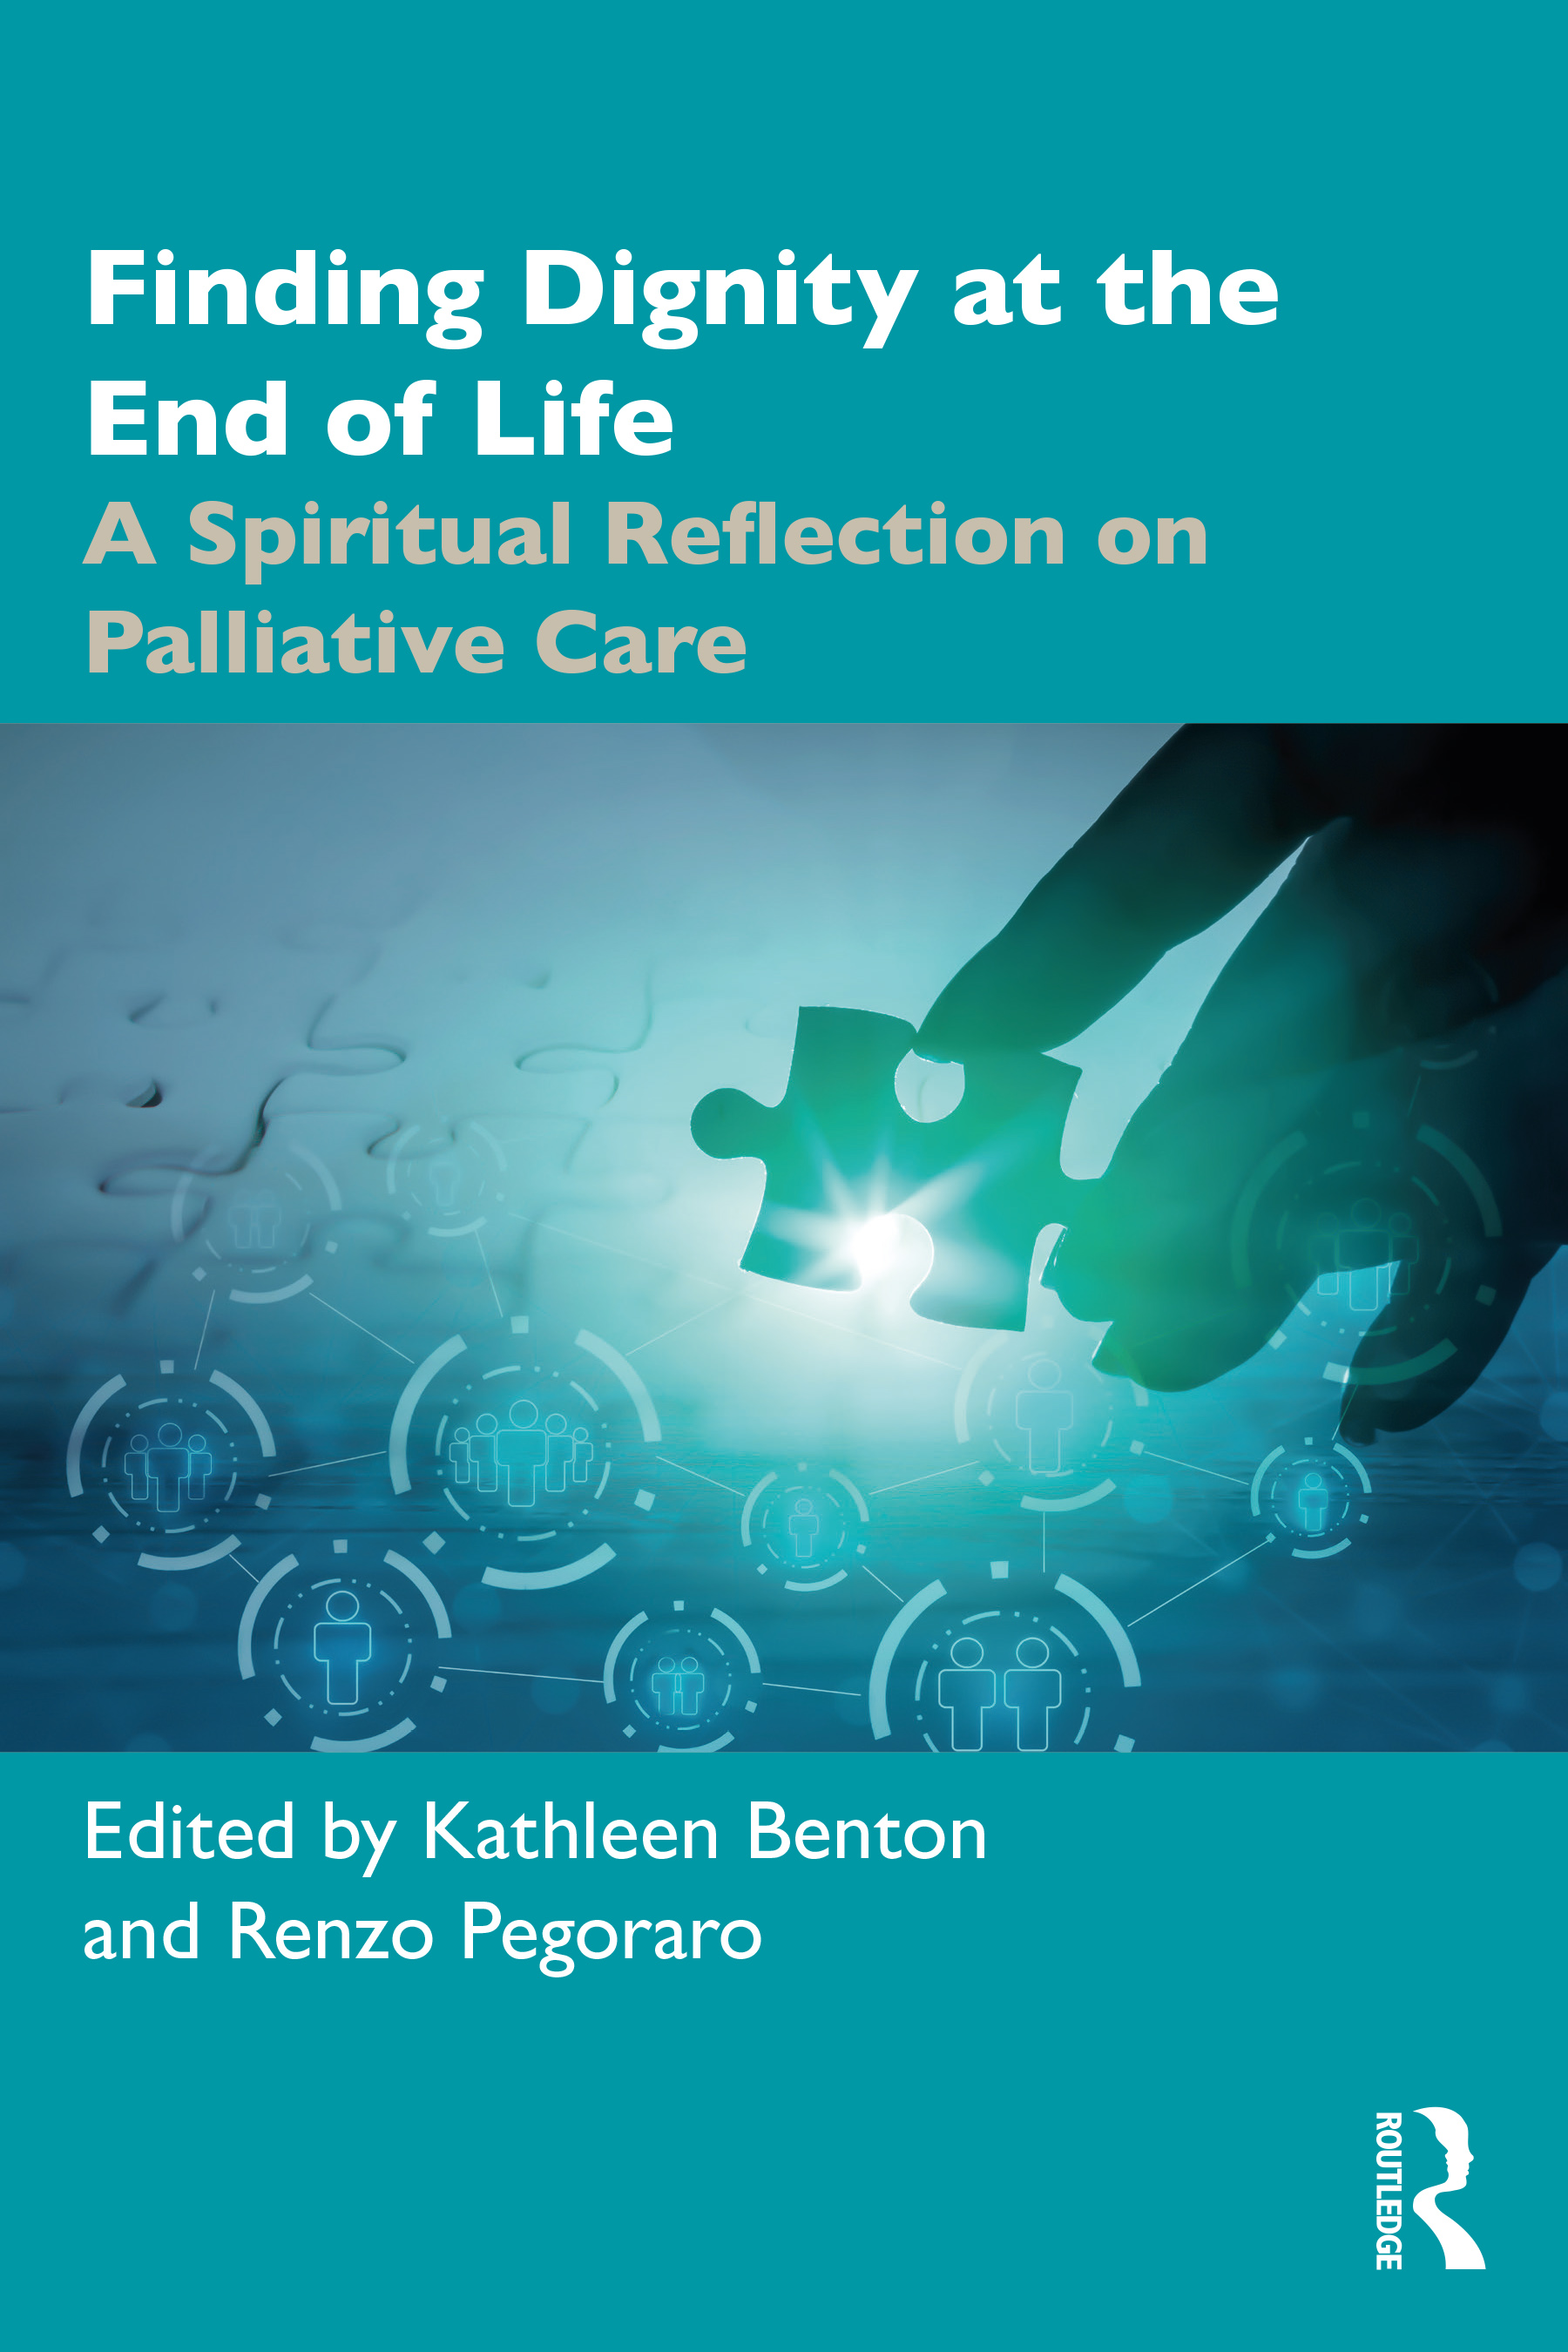 Finding Dignity at the End of Life: A Spiritual Reflection on Palliative Care book cover